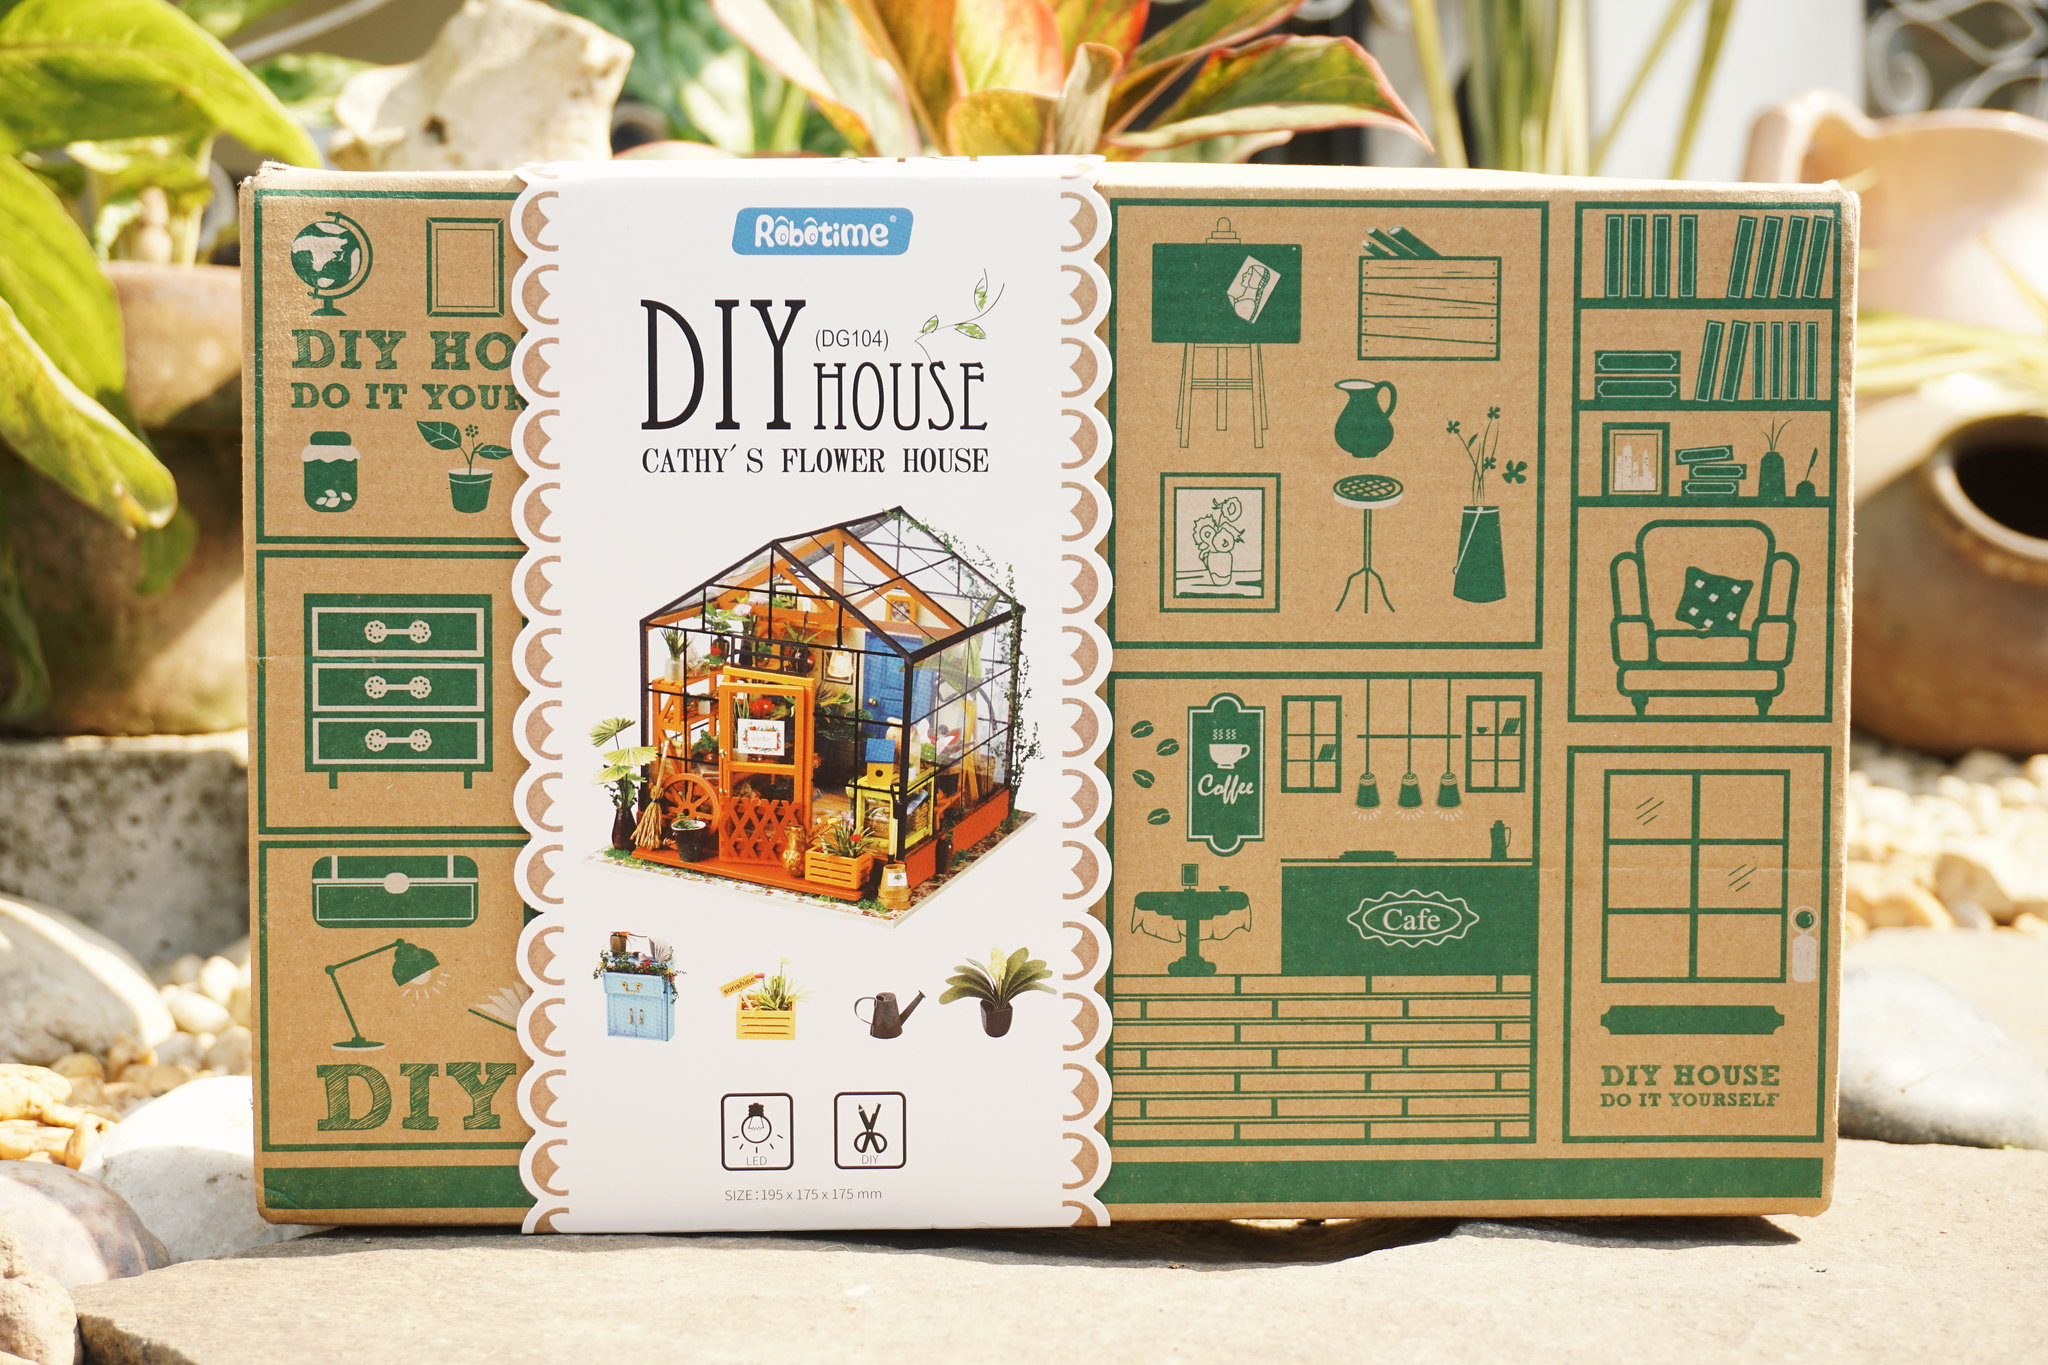 Diy dollhouse kit miniature greenhouse cathys flower house 2017 06 16 030101 1 1 solutioingenieria Image collections